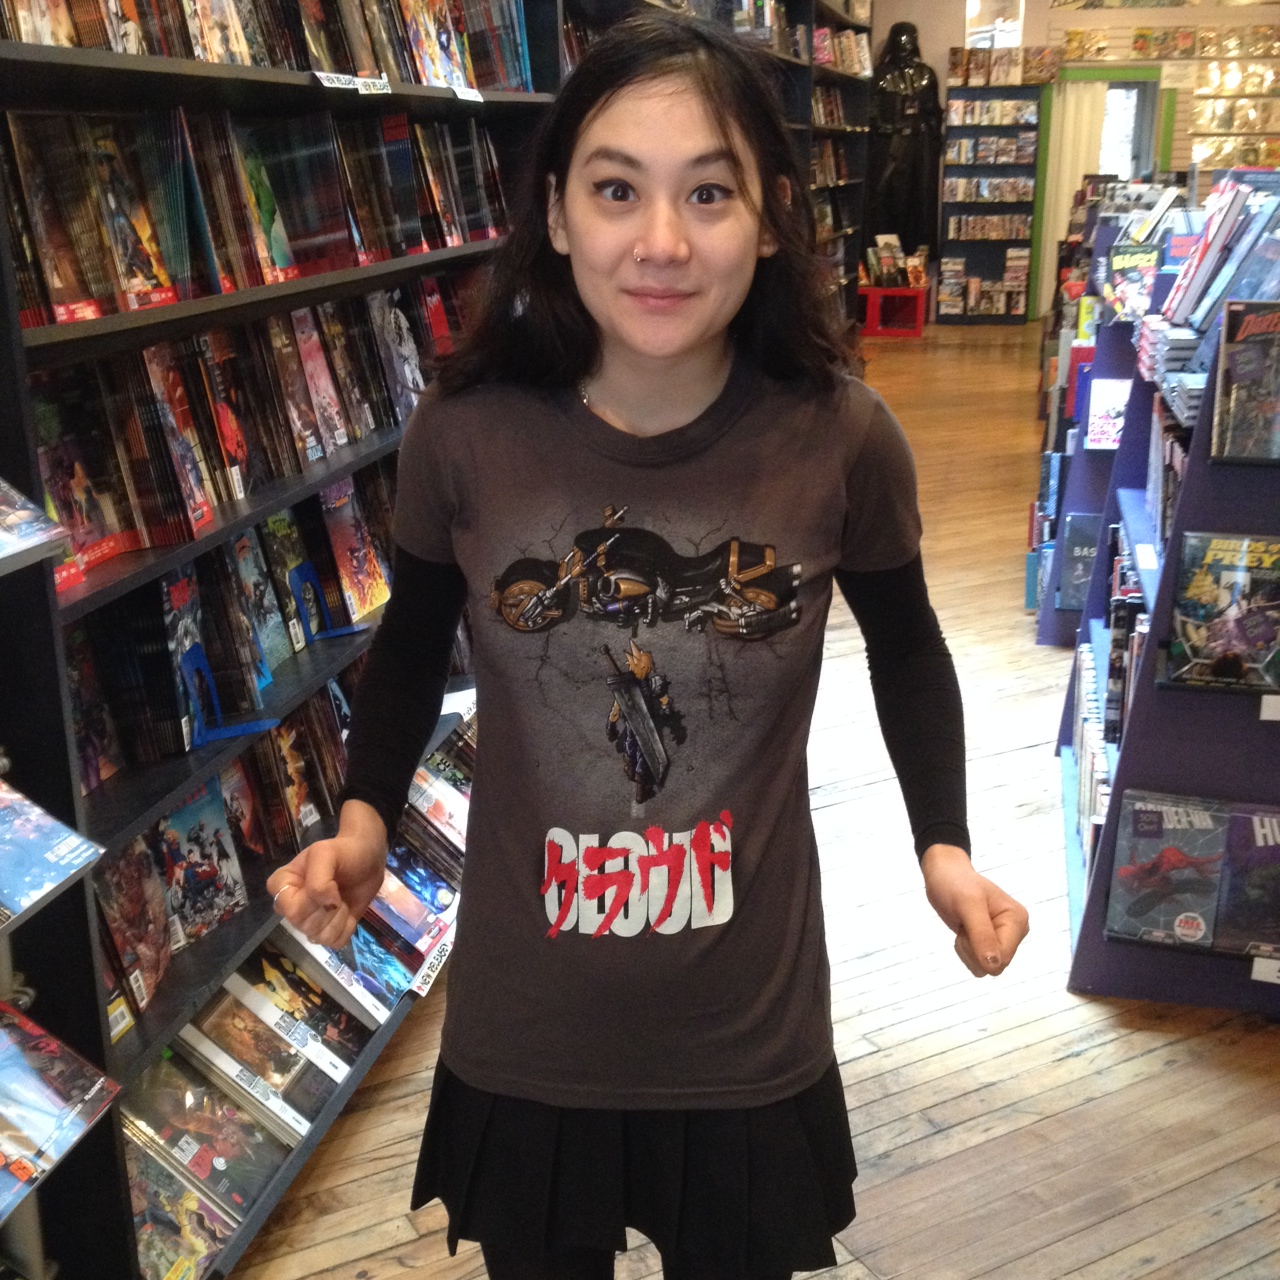 There are new TeeFury shirts in at both shops too! Michelle fell in love with this Akira / Final Fantasy VII mash-up one!